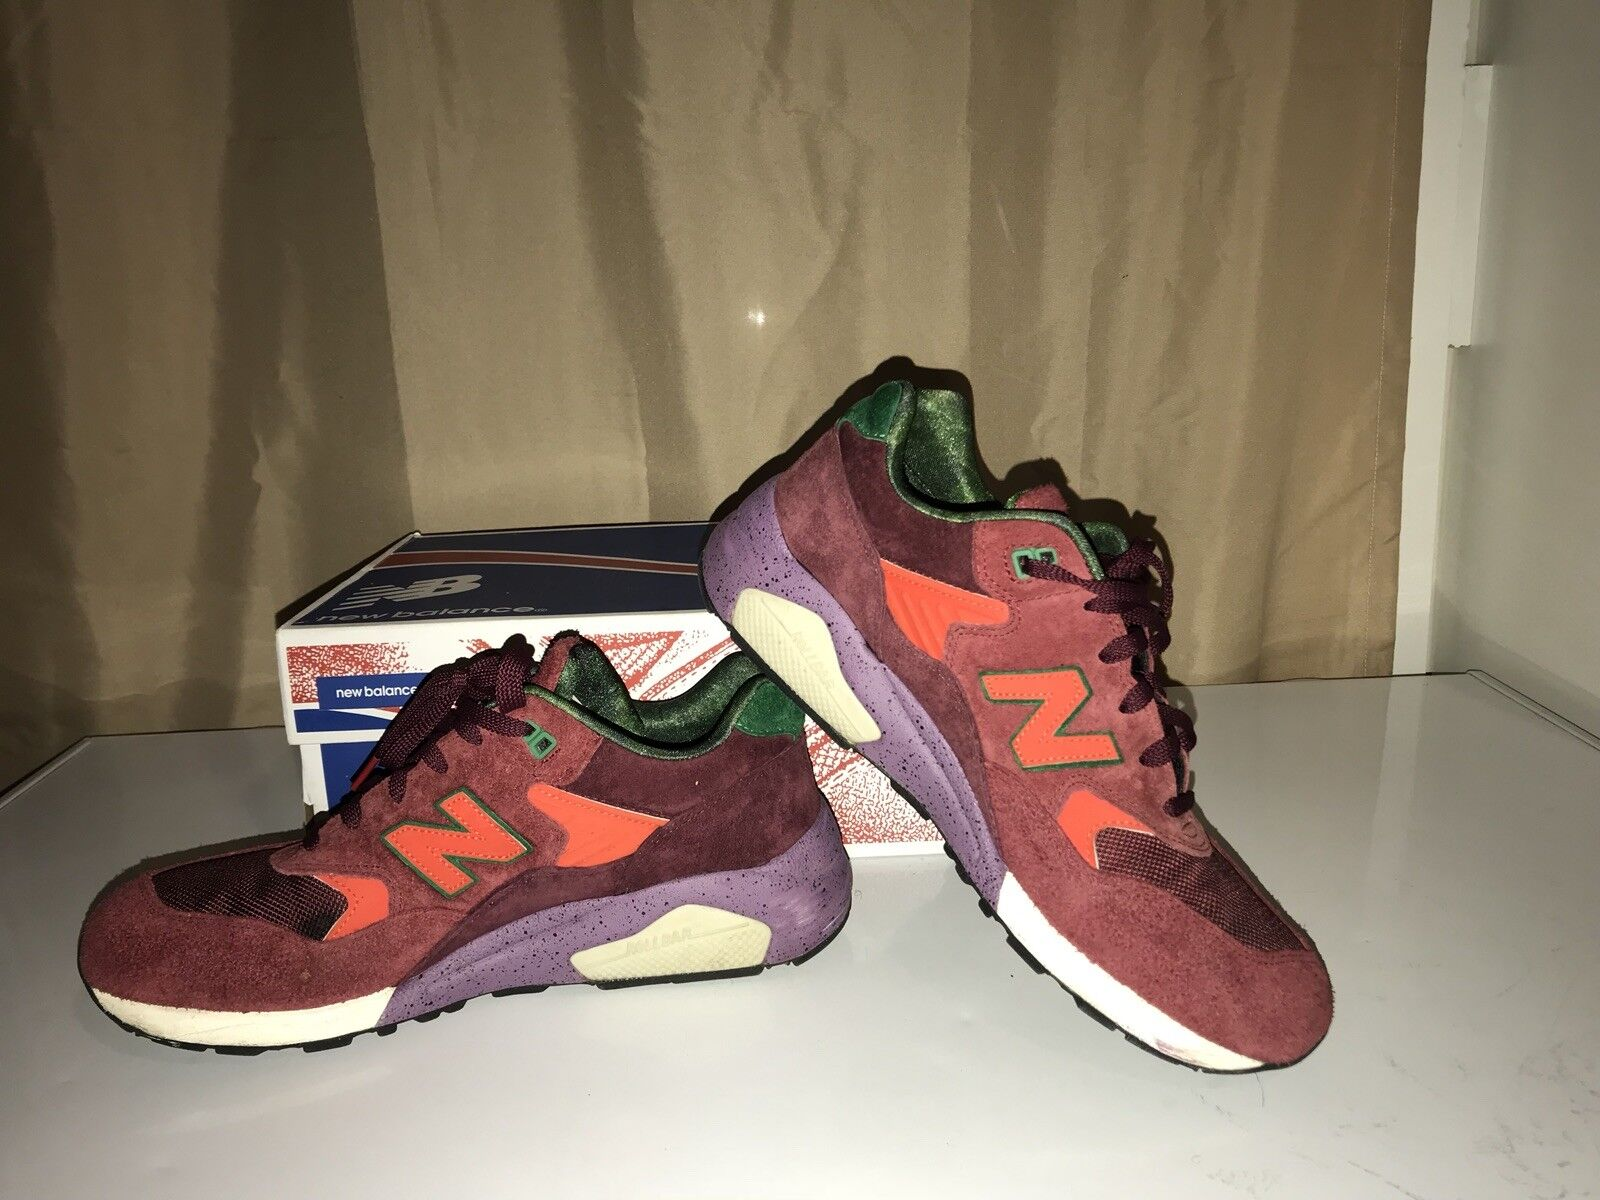 Acker Packers shoes x New Balance MT580  Pine Barrens